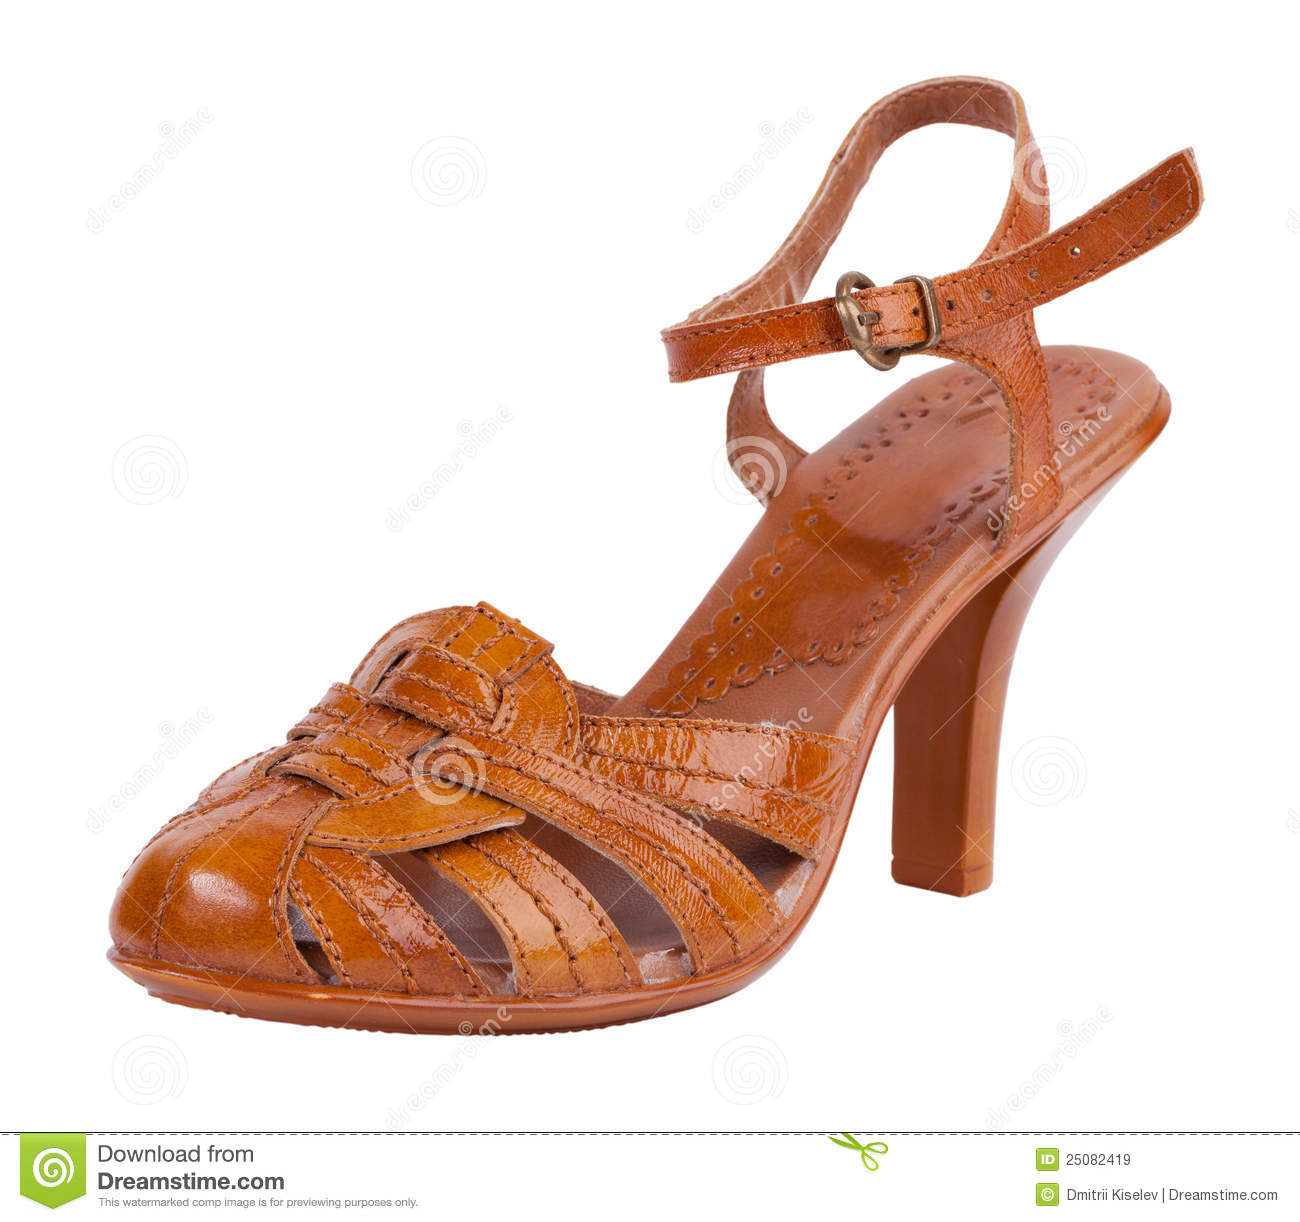 In women's fashion accessories footwear finds a prominent place apart from handbags. A striking feature in any women's attire would definitely be her foot